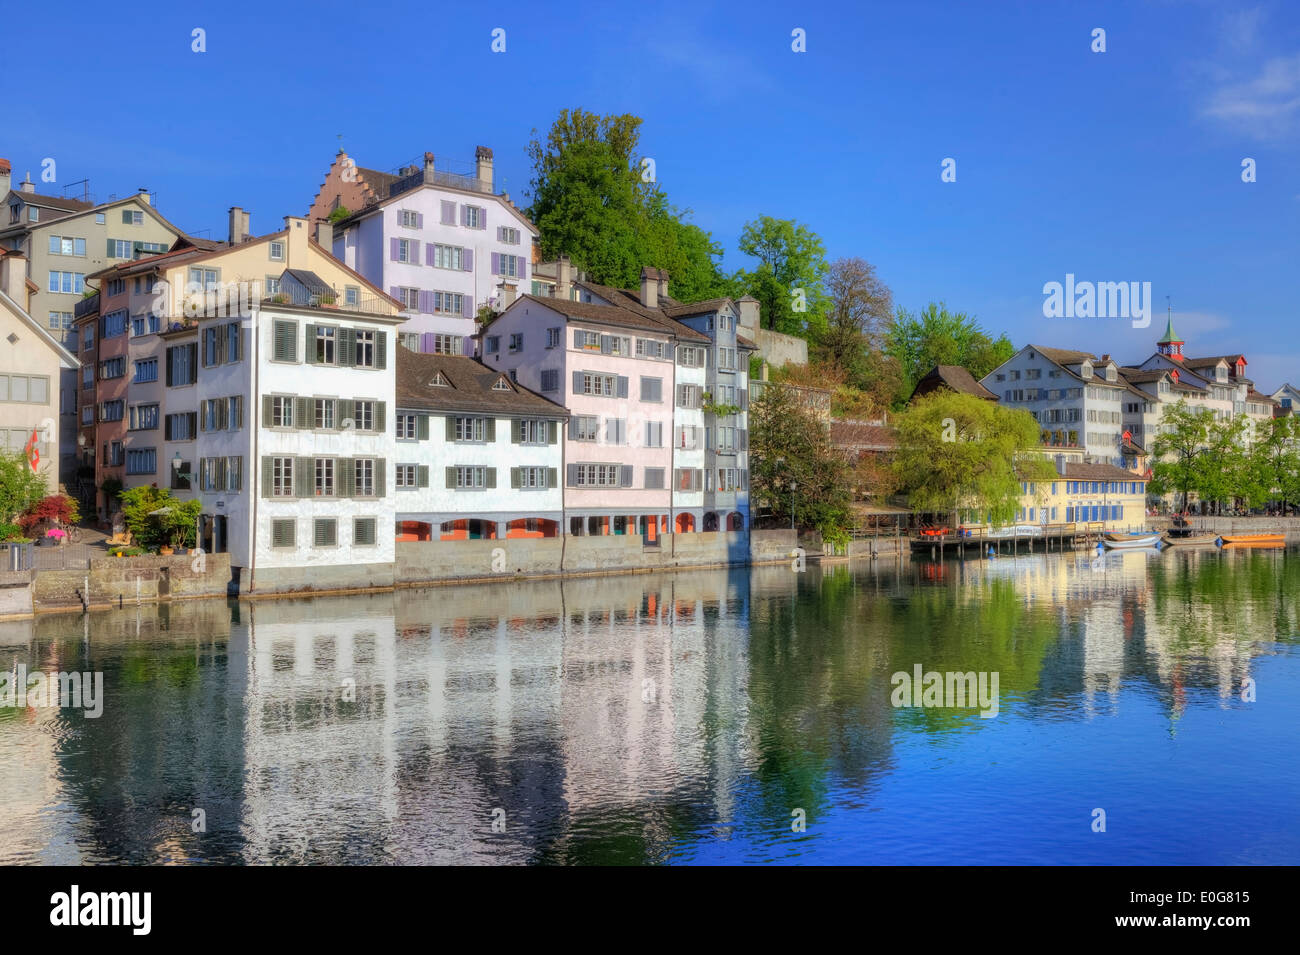 Zurich, Schipfe, old town, Limmat, Switzerland - Stock Image